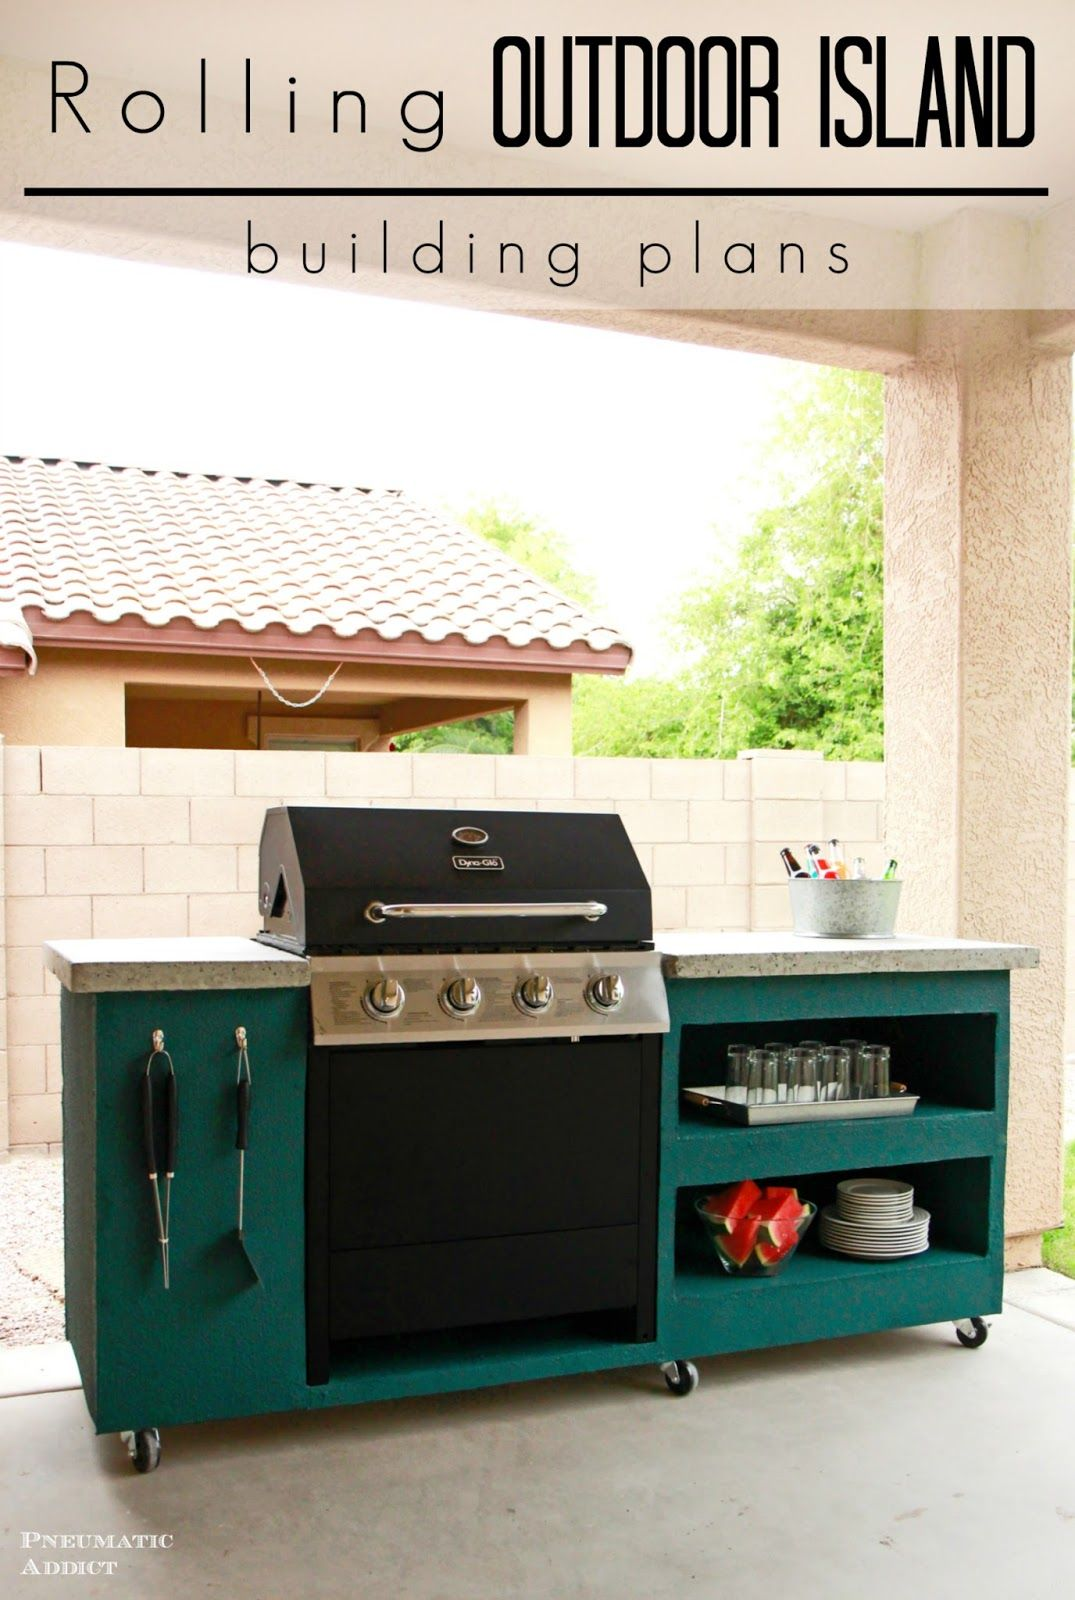 Diy rolling outdoor kitchen building plans this is for Outdoor grill cabinet plans